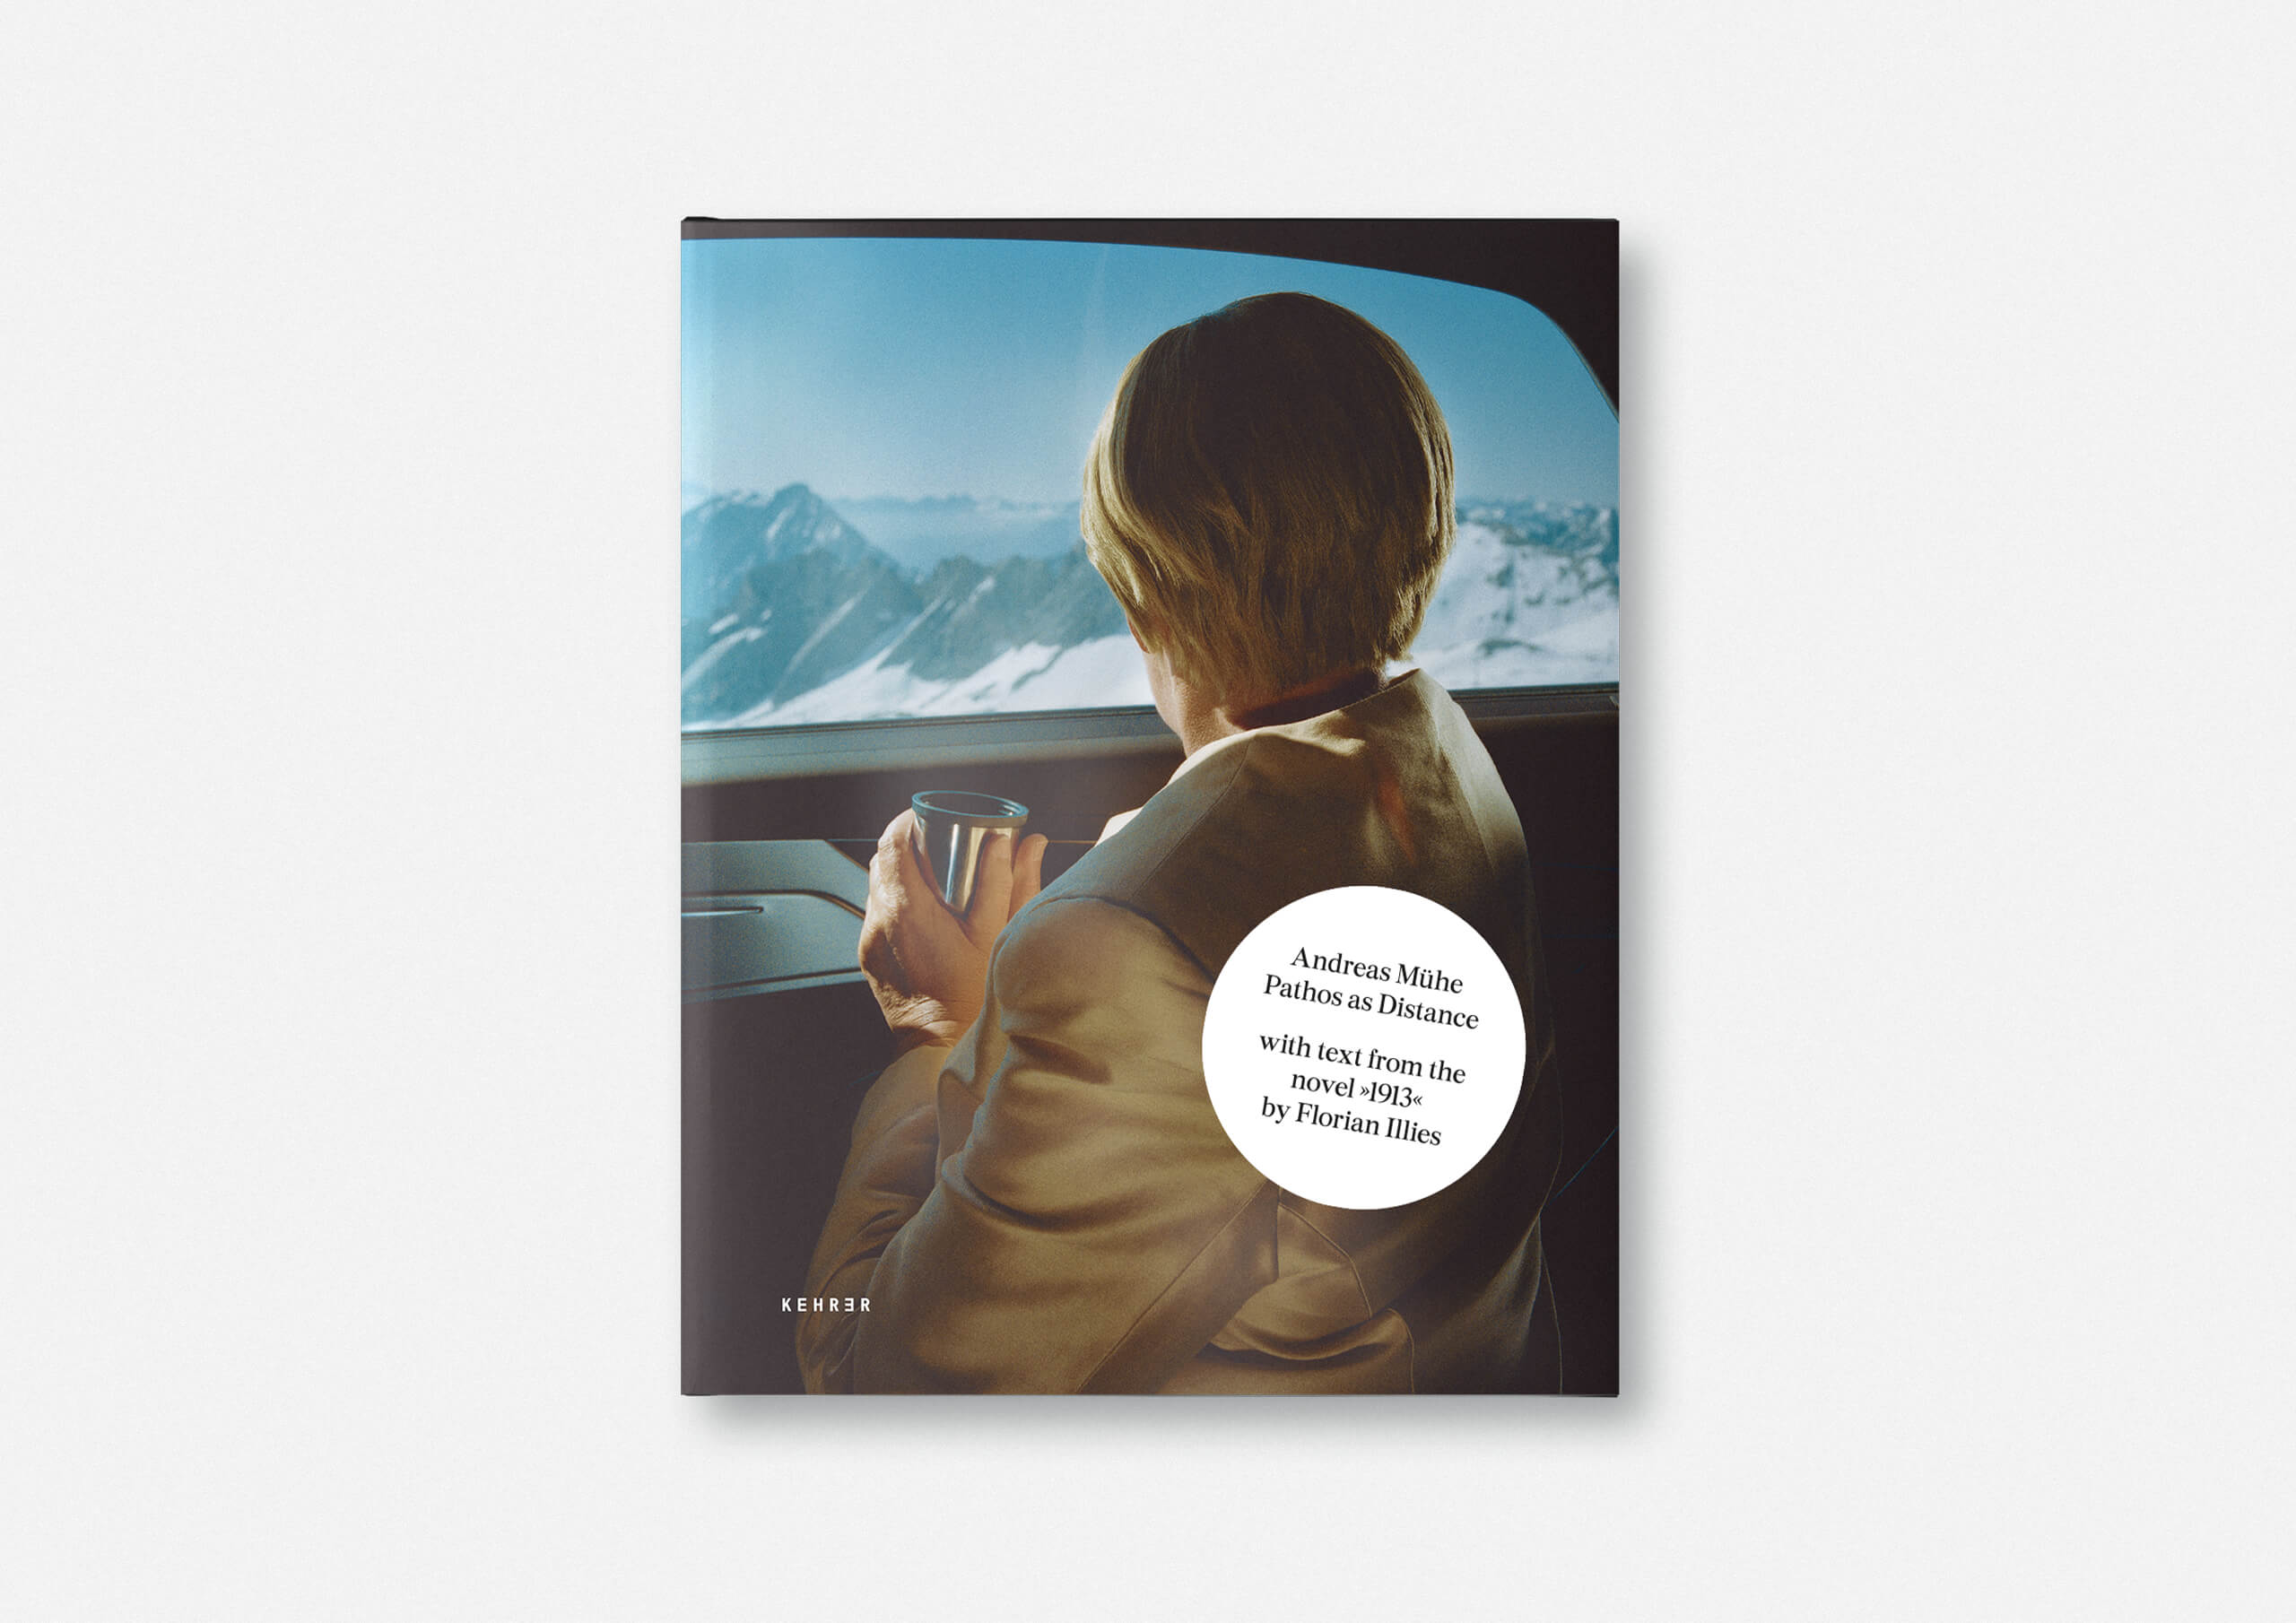 https://neuegestaltung.de/media/pages/clients/andreas-muhe-pathos-als-distanz/08f3faf3cd-1597415202/am_dth_ng-web_cover_front_umschlag.jpg